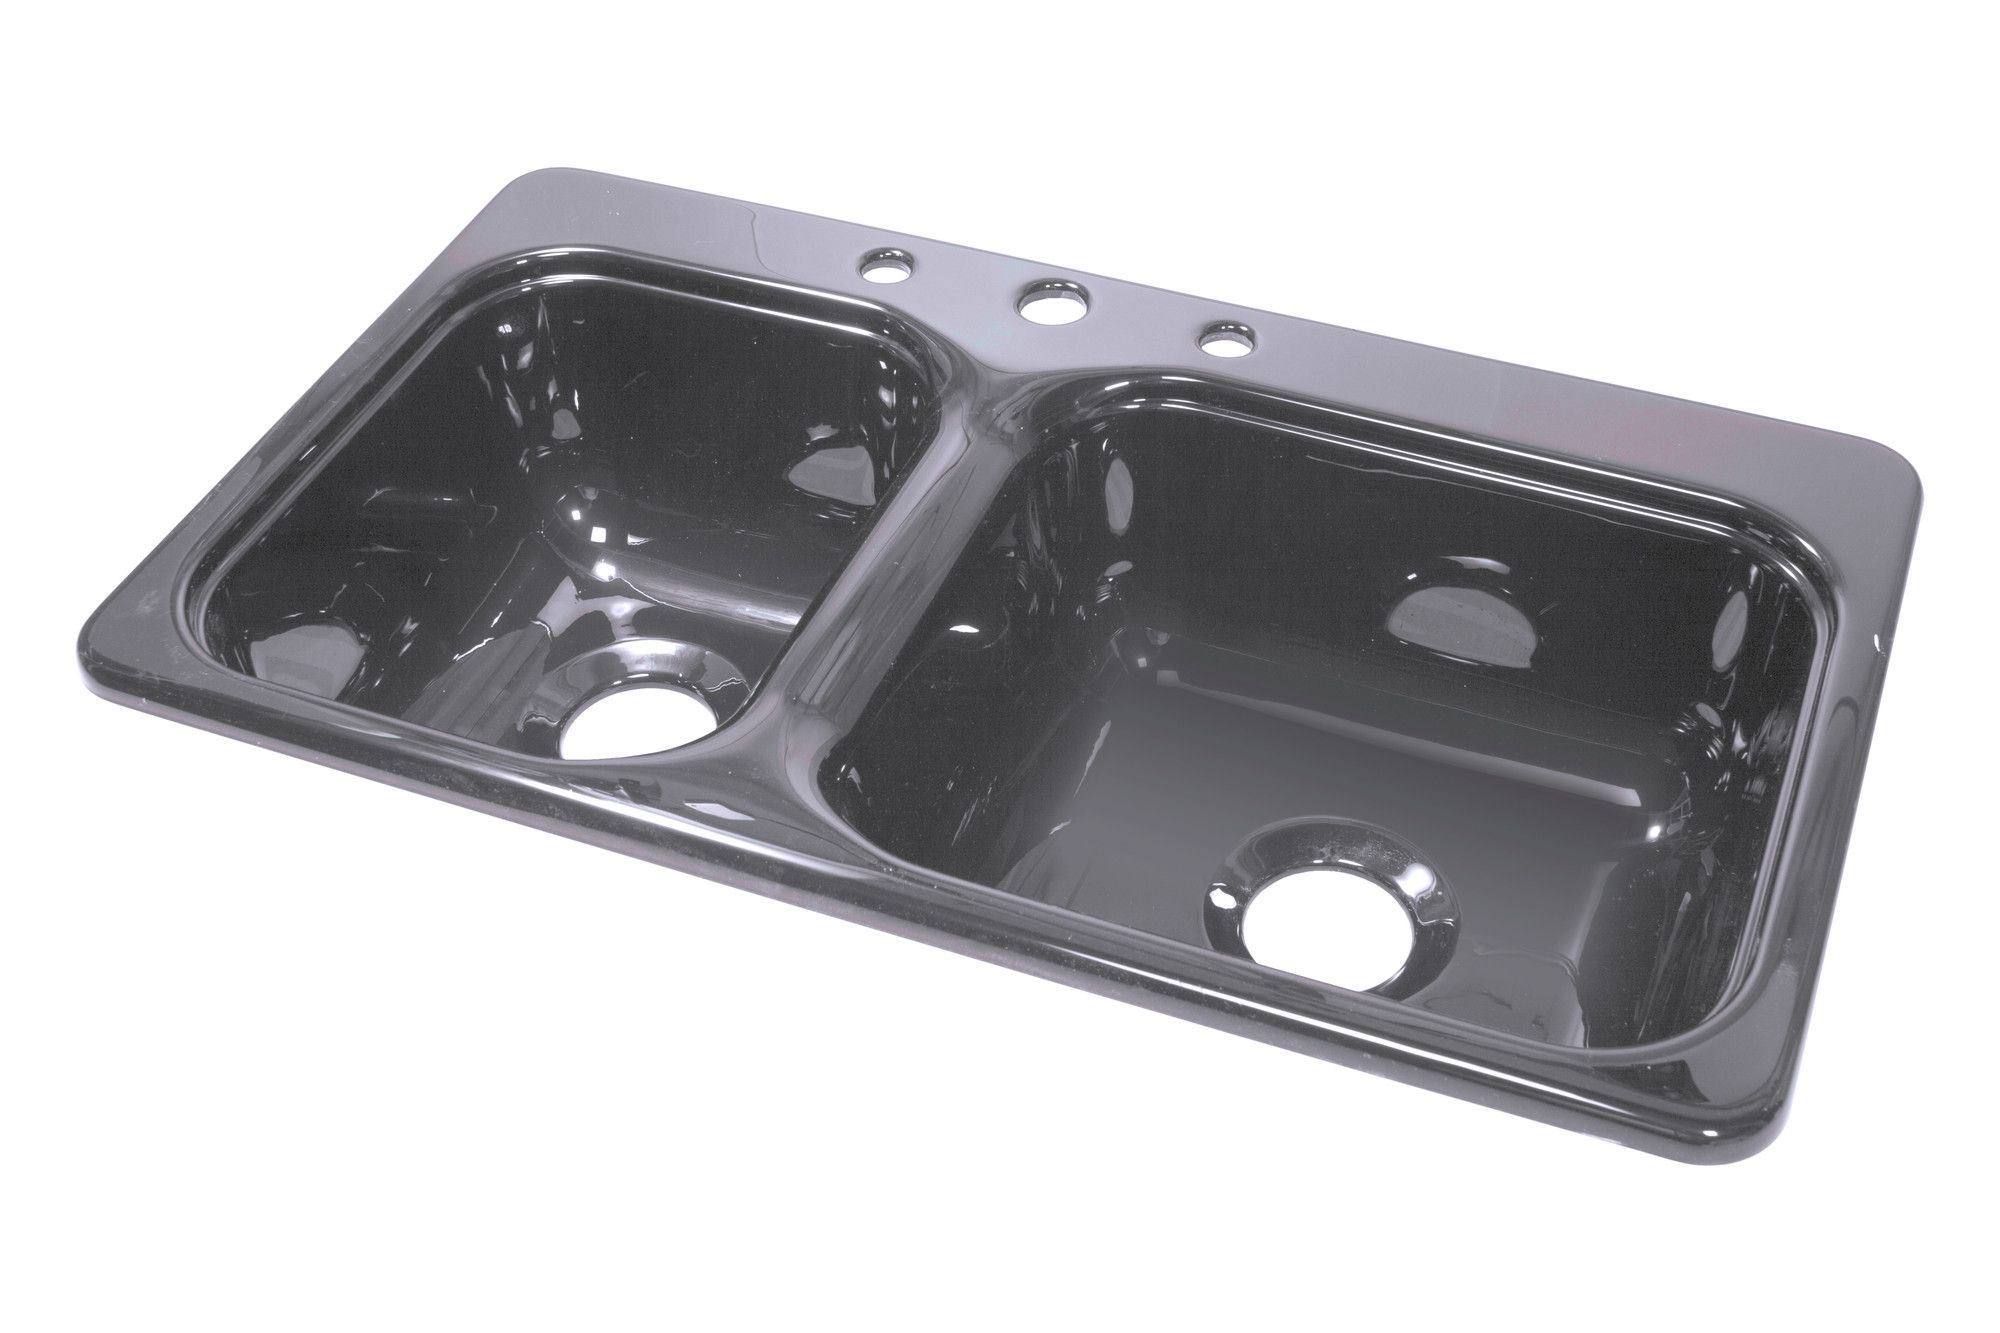 lyons industries dks manufactured mobile home acrylic kitchen sink with step down ledge deluxe 33   x 19   x 8   kitchen sink   products   pinterest   products  rh   pinterest com